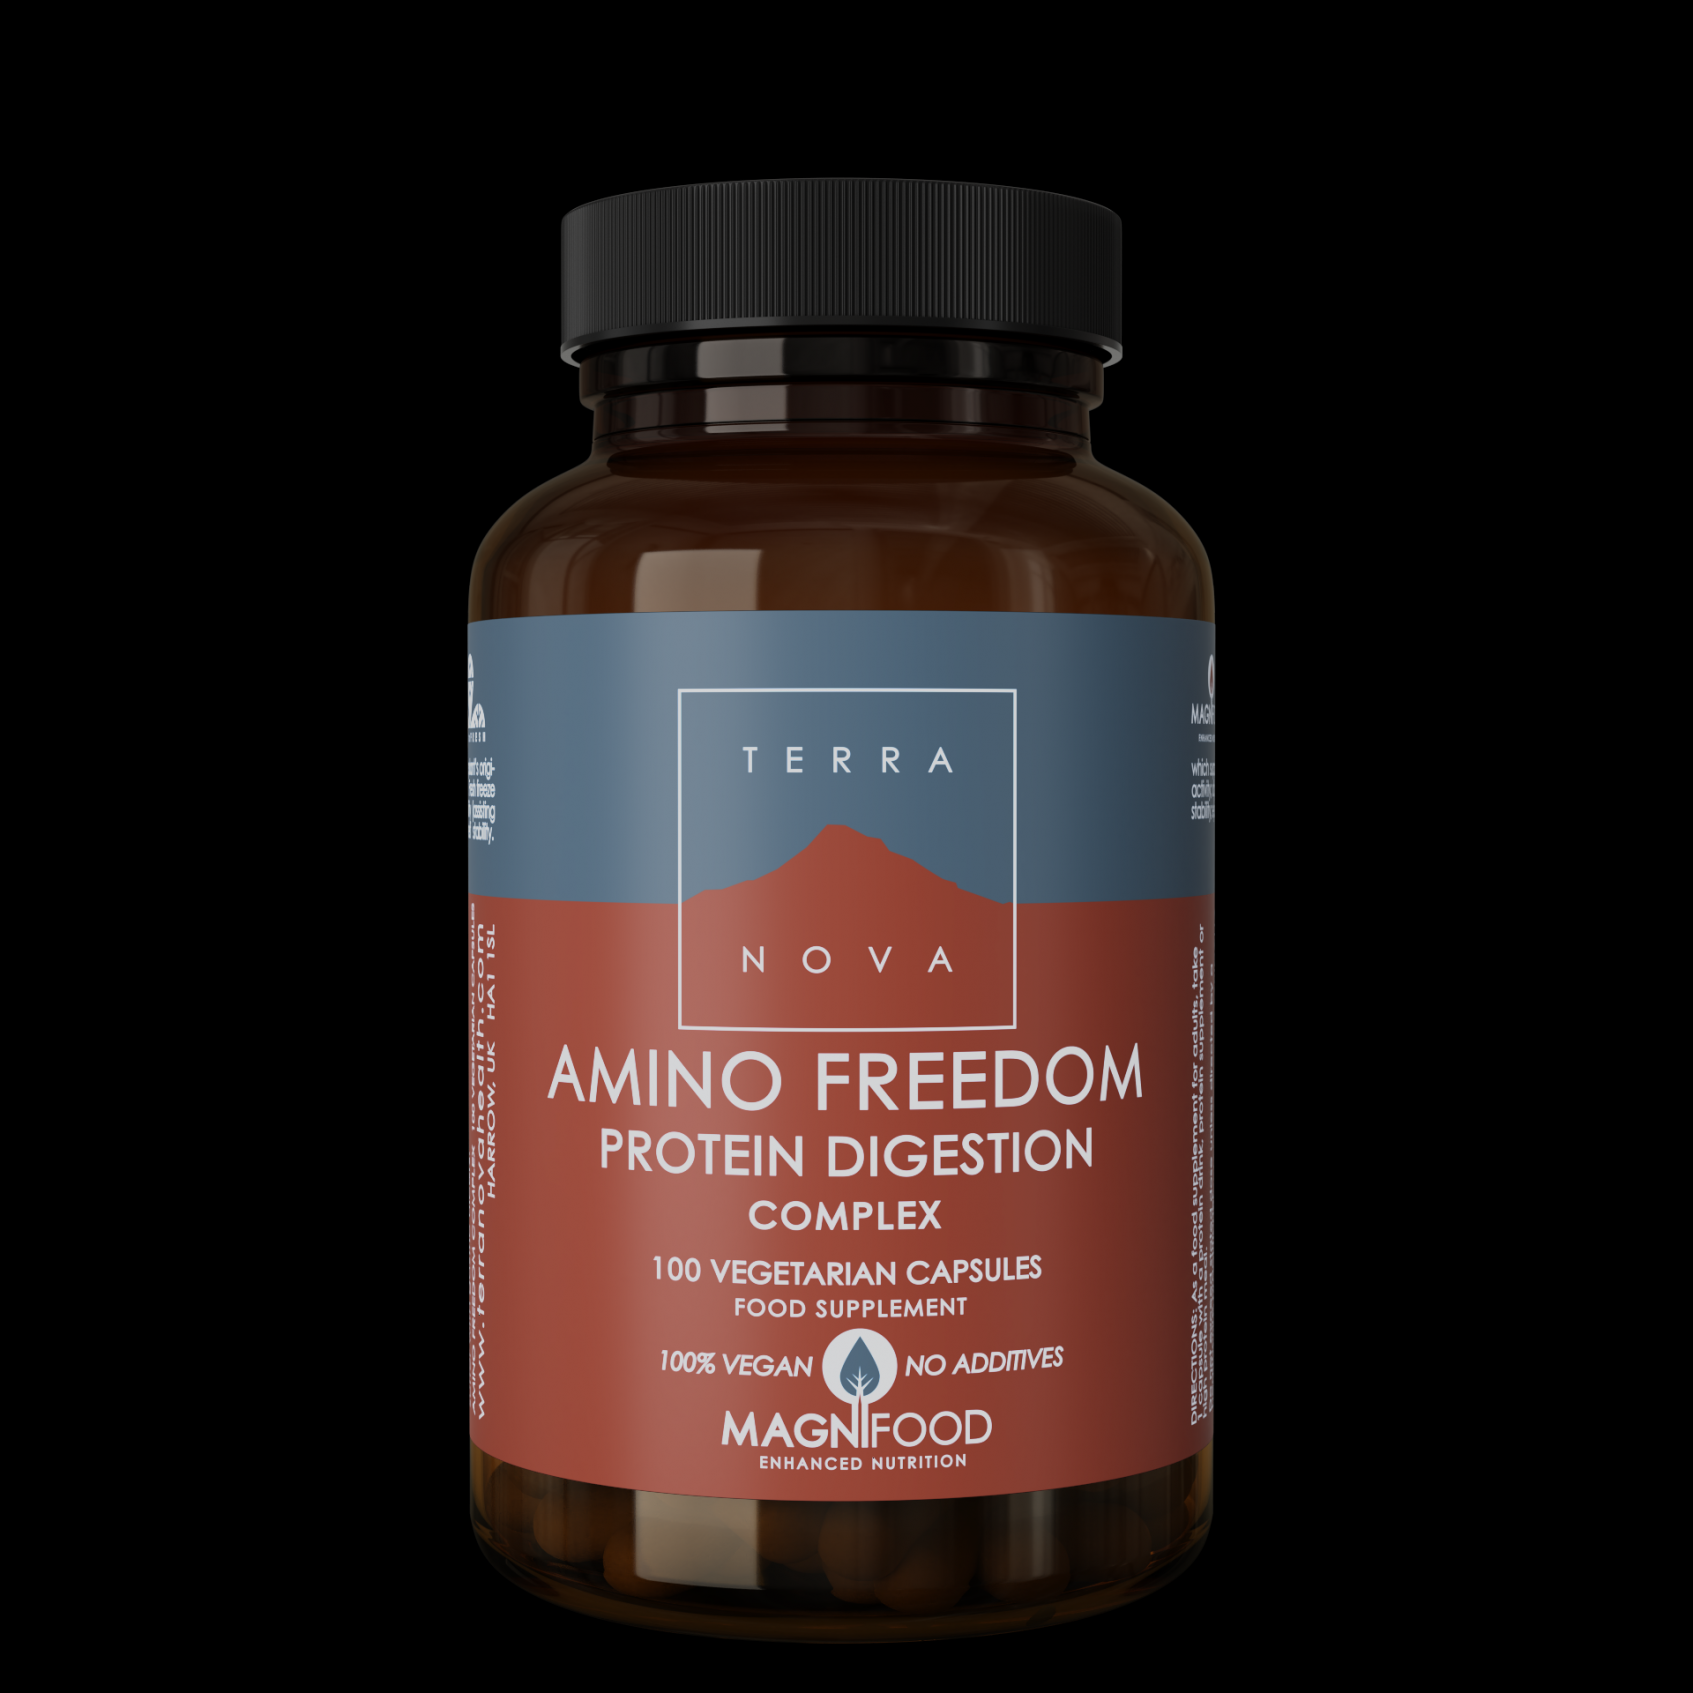 Amino Freedom Protein Digestion Complex 100's